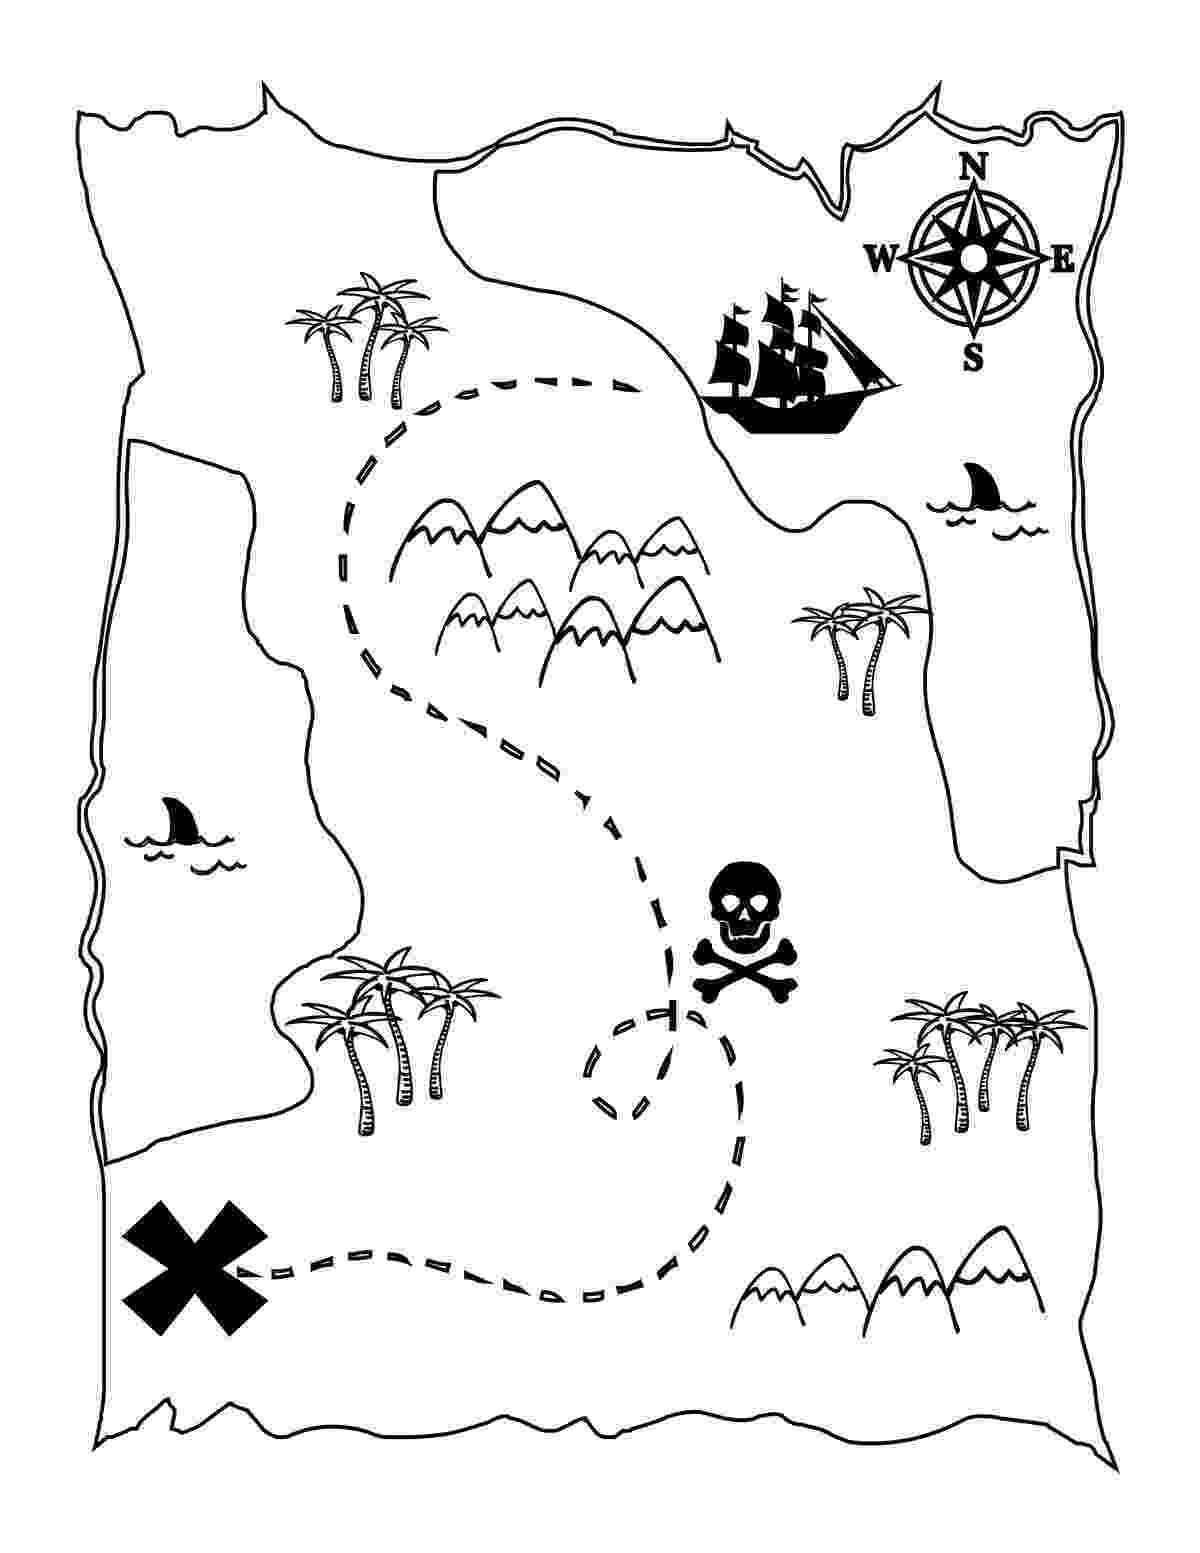 pirate coloring pages for kids printable pirate coloring pages to download and print for free kids for pages coloring pirate printable